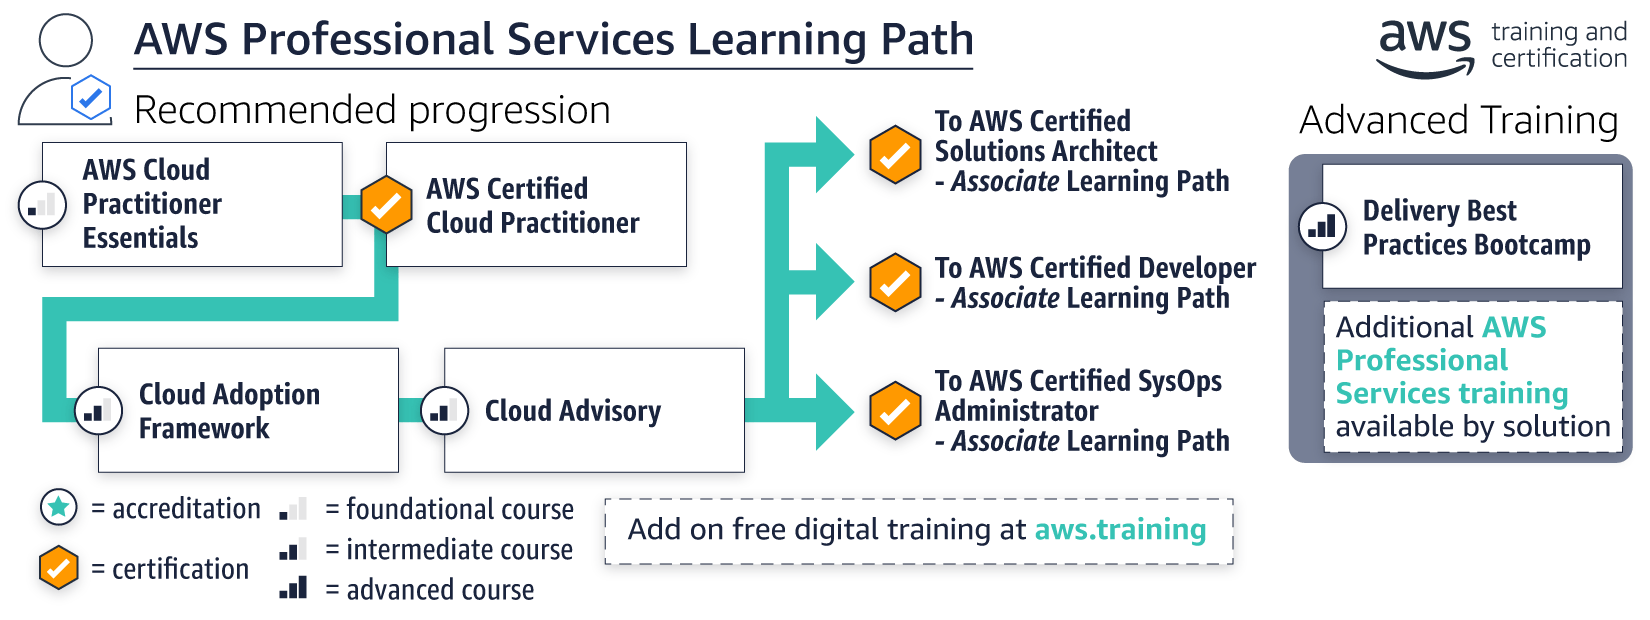 Apn Partner Aws Professional Services Learning Path Moved